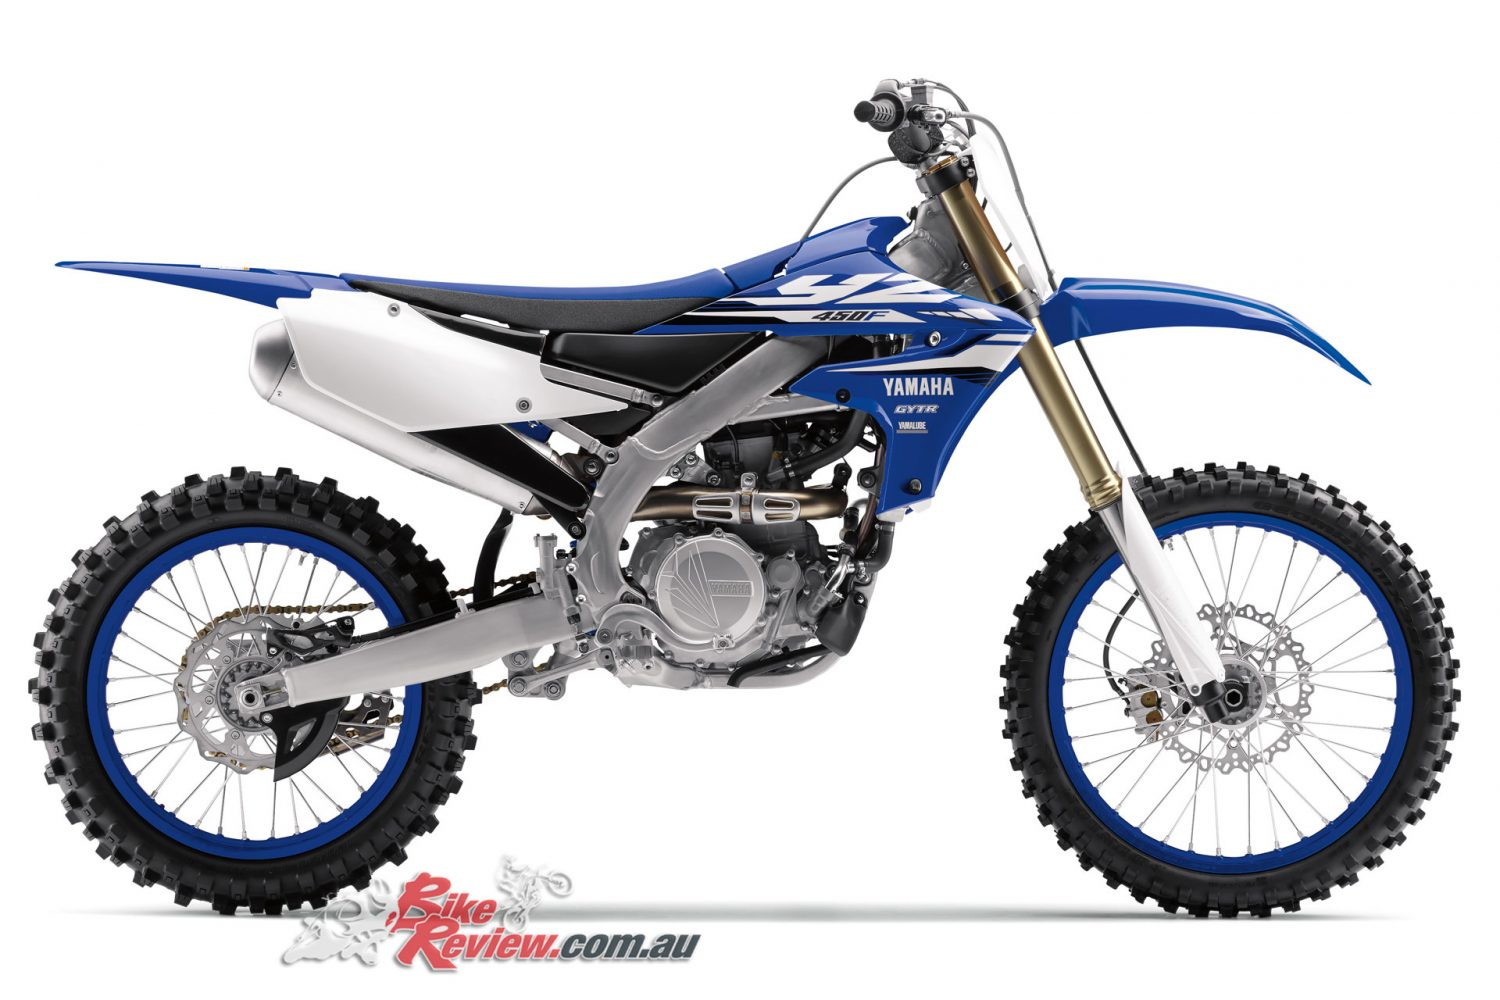 Yamaha 39 s all new yz450f arrives bike review for Yamaha yz 450f